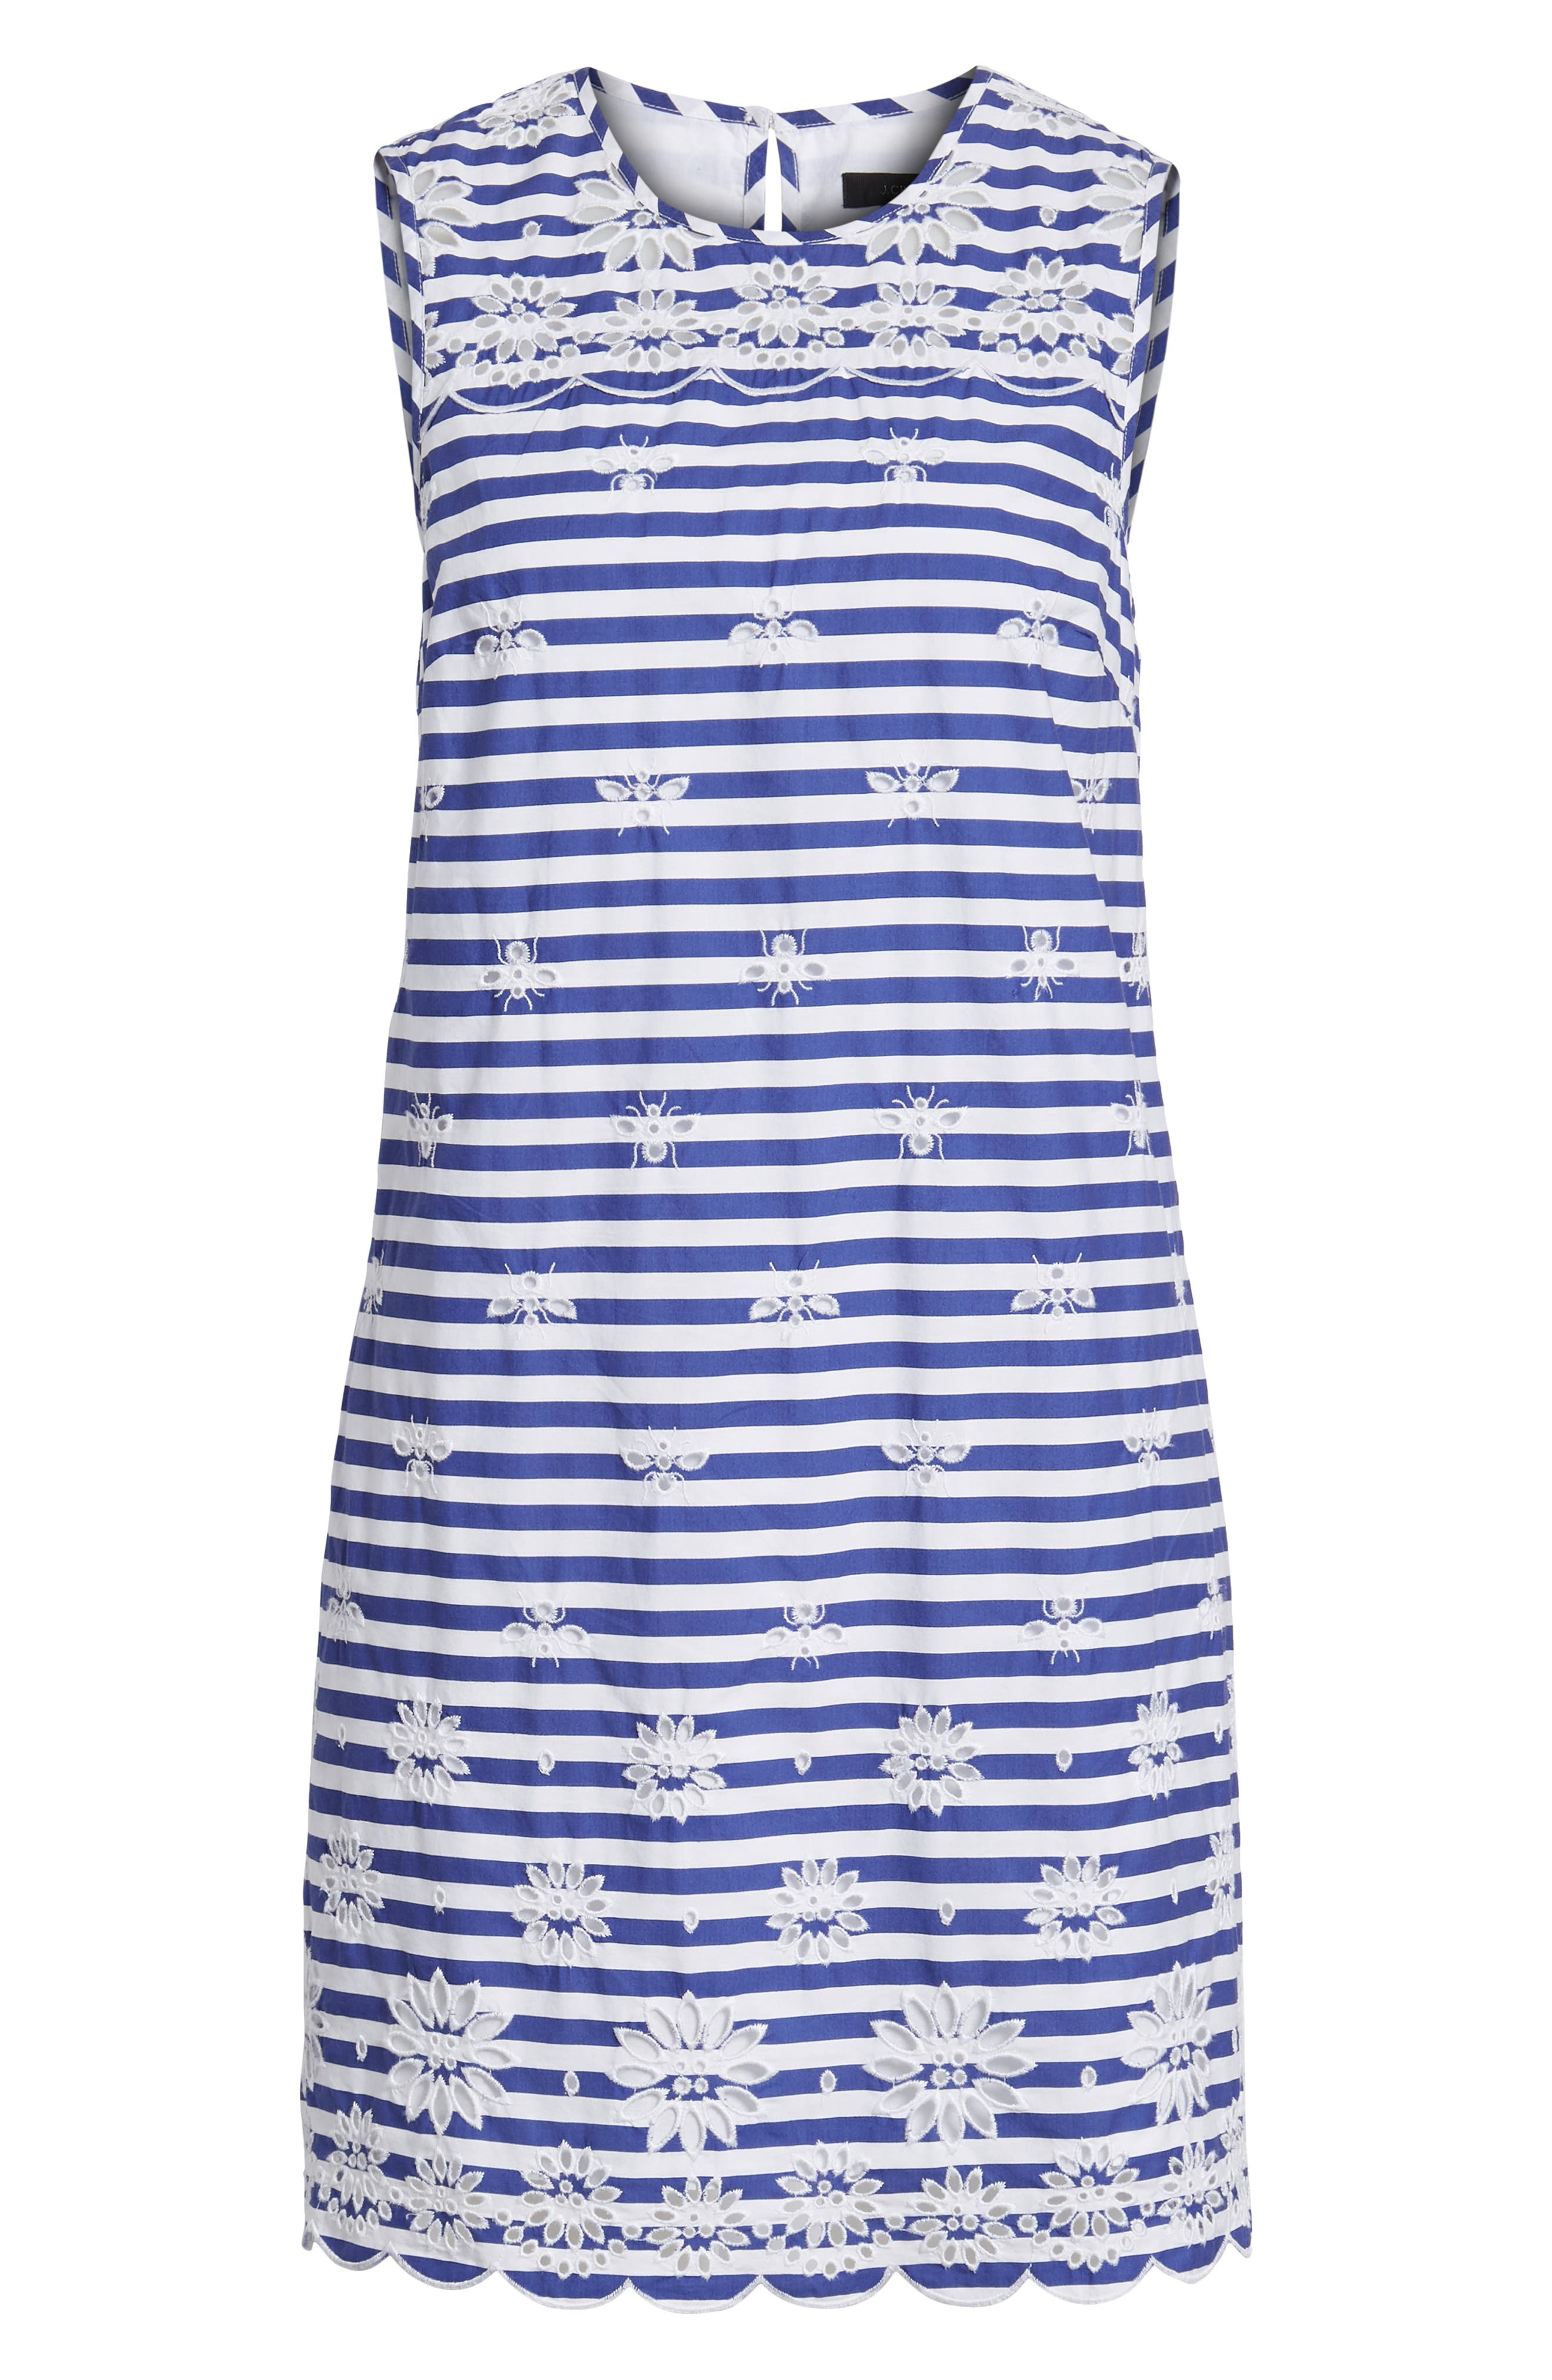 Dante Embroidered Stripe Dress,                             Alternate thumbnail 6, color,                             400